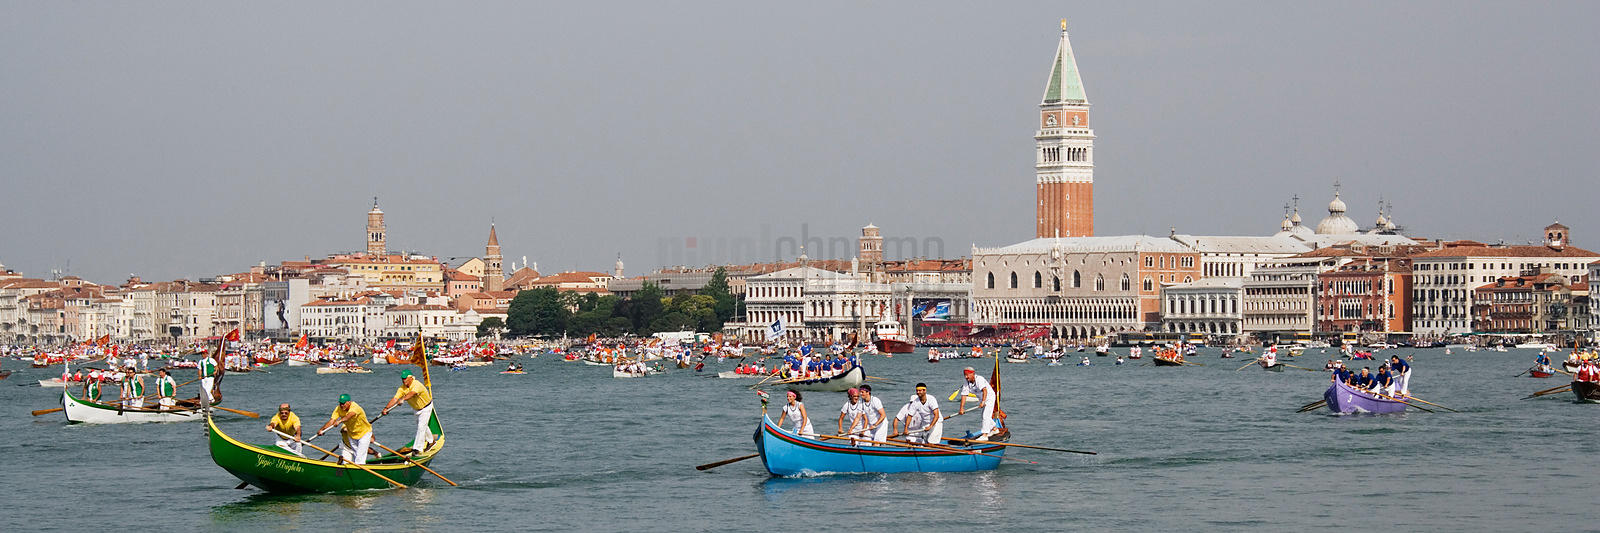 The Vogalonga (Boat Race) between the Maritime Regions of Italy Venice Italy